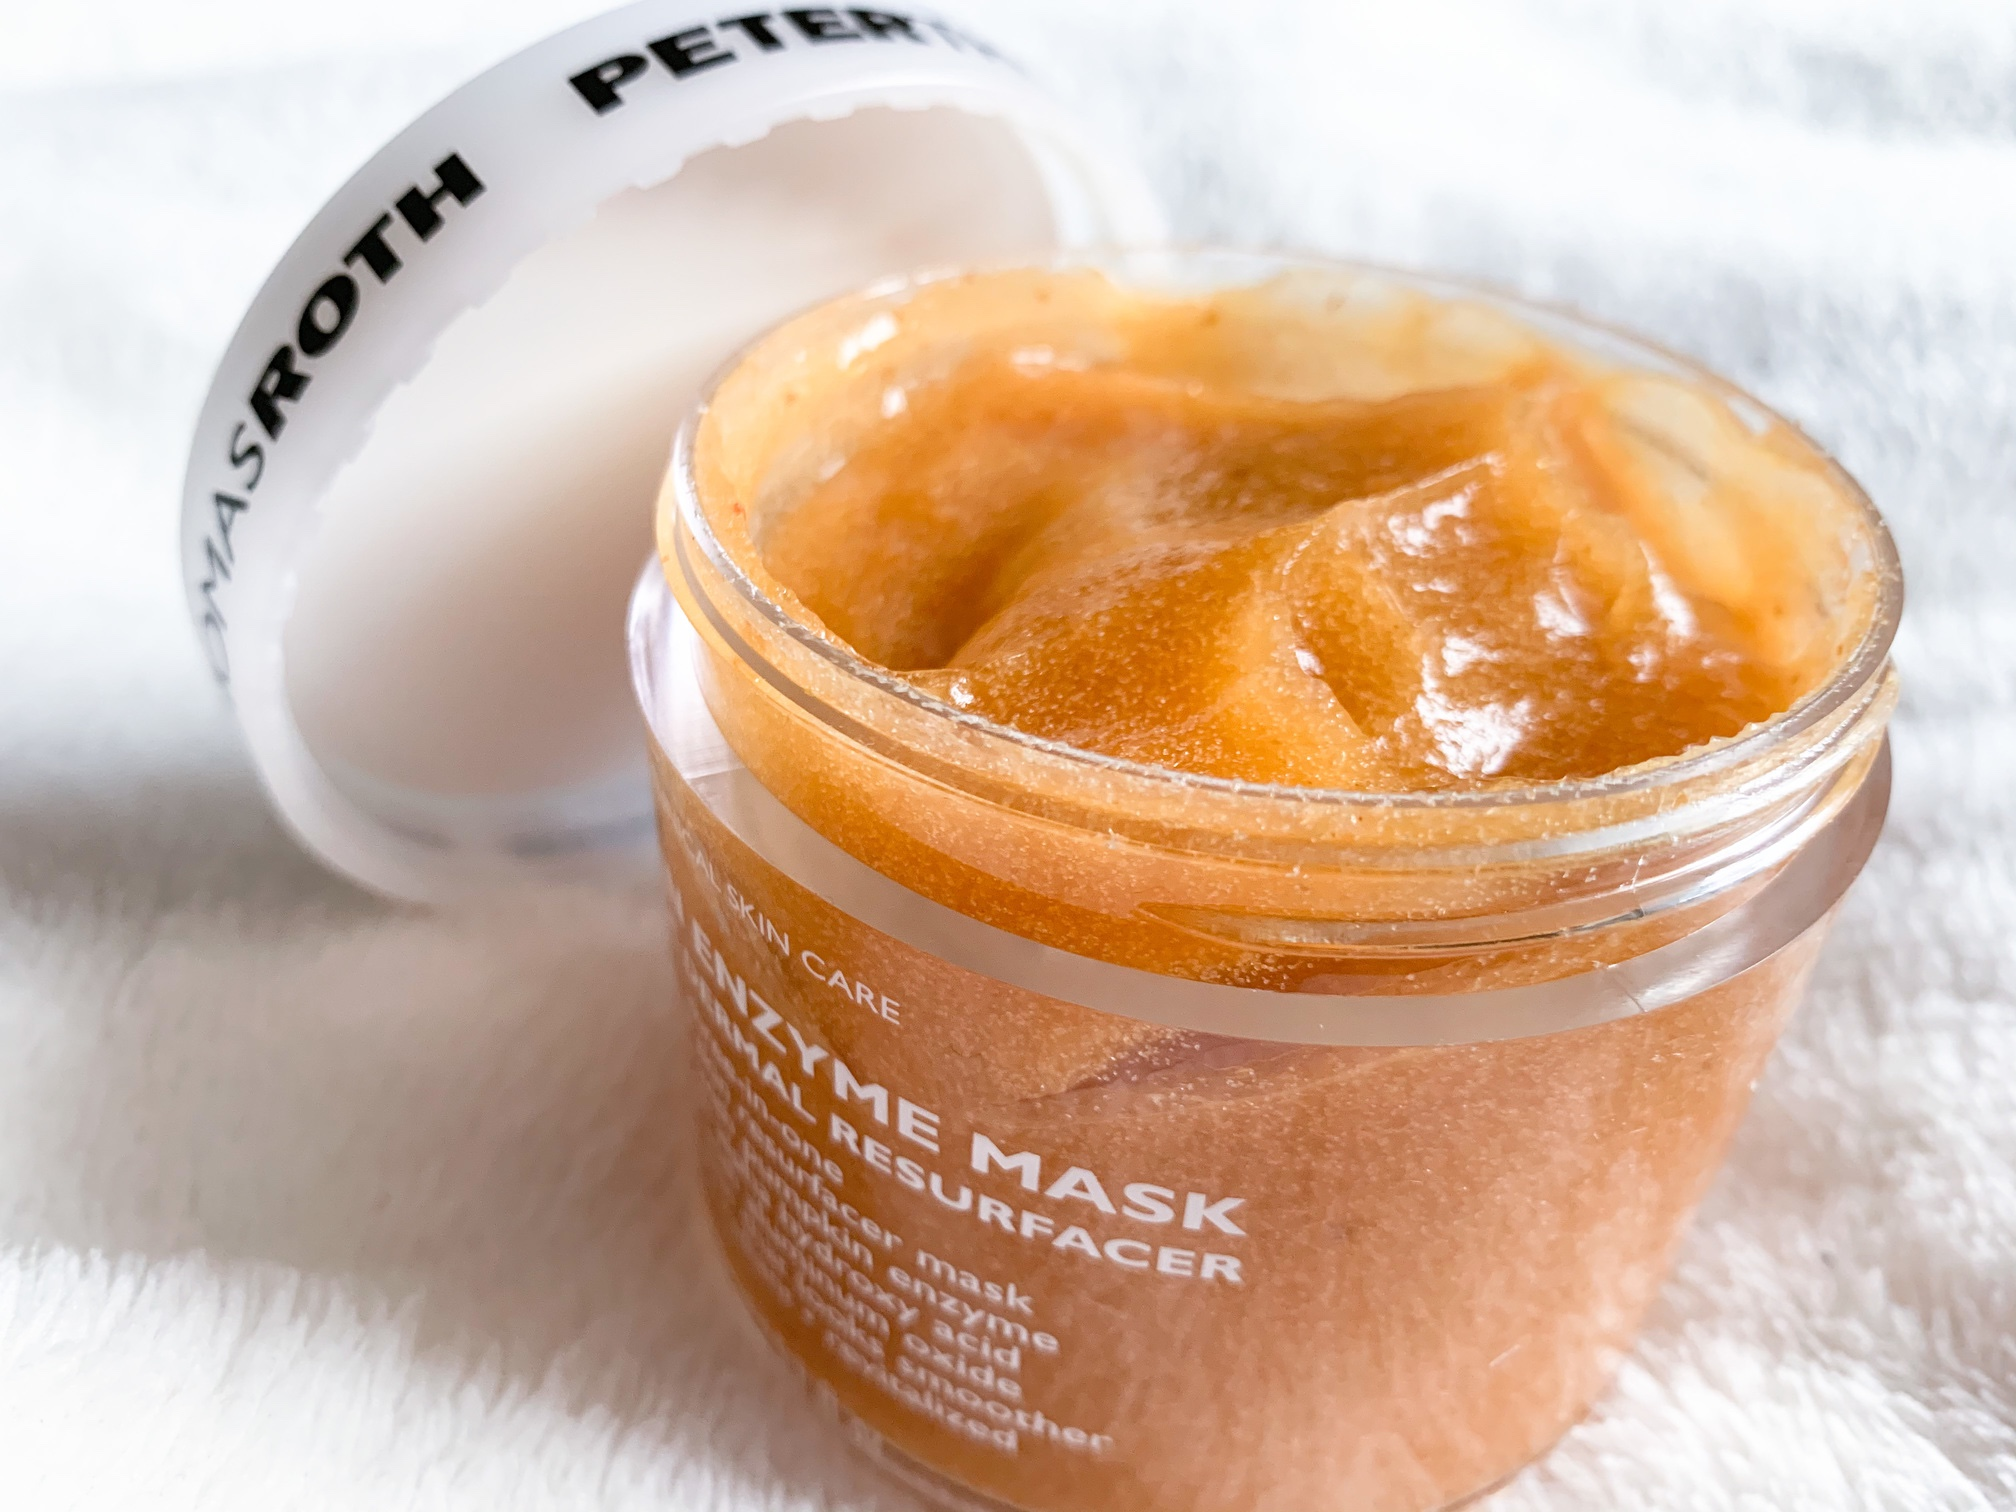 Peter Thomas Roth pumpkin enzyme face mask on a white blanket with the lid off